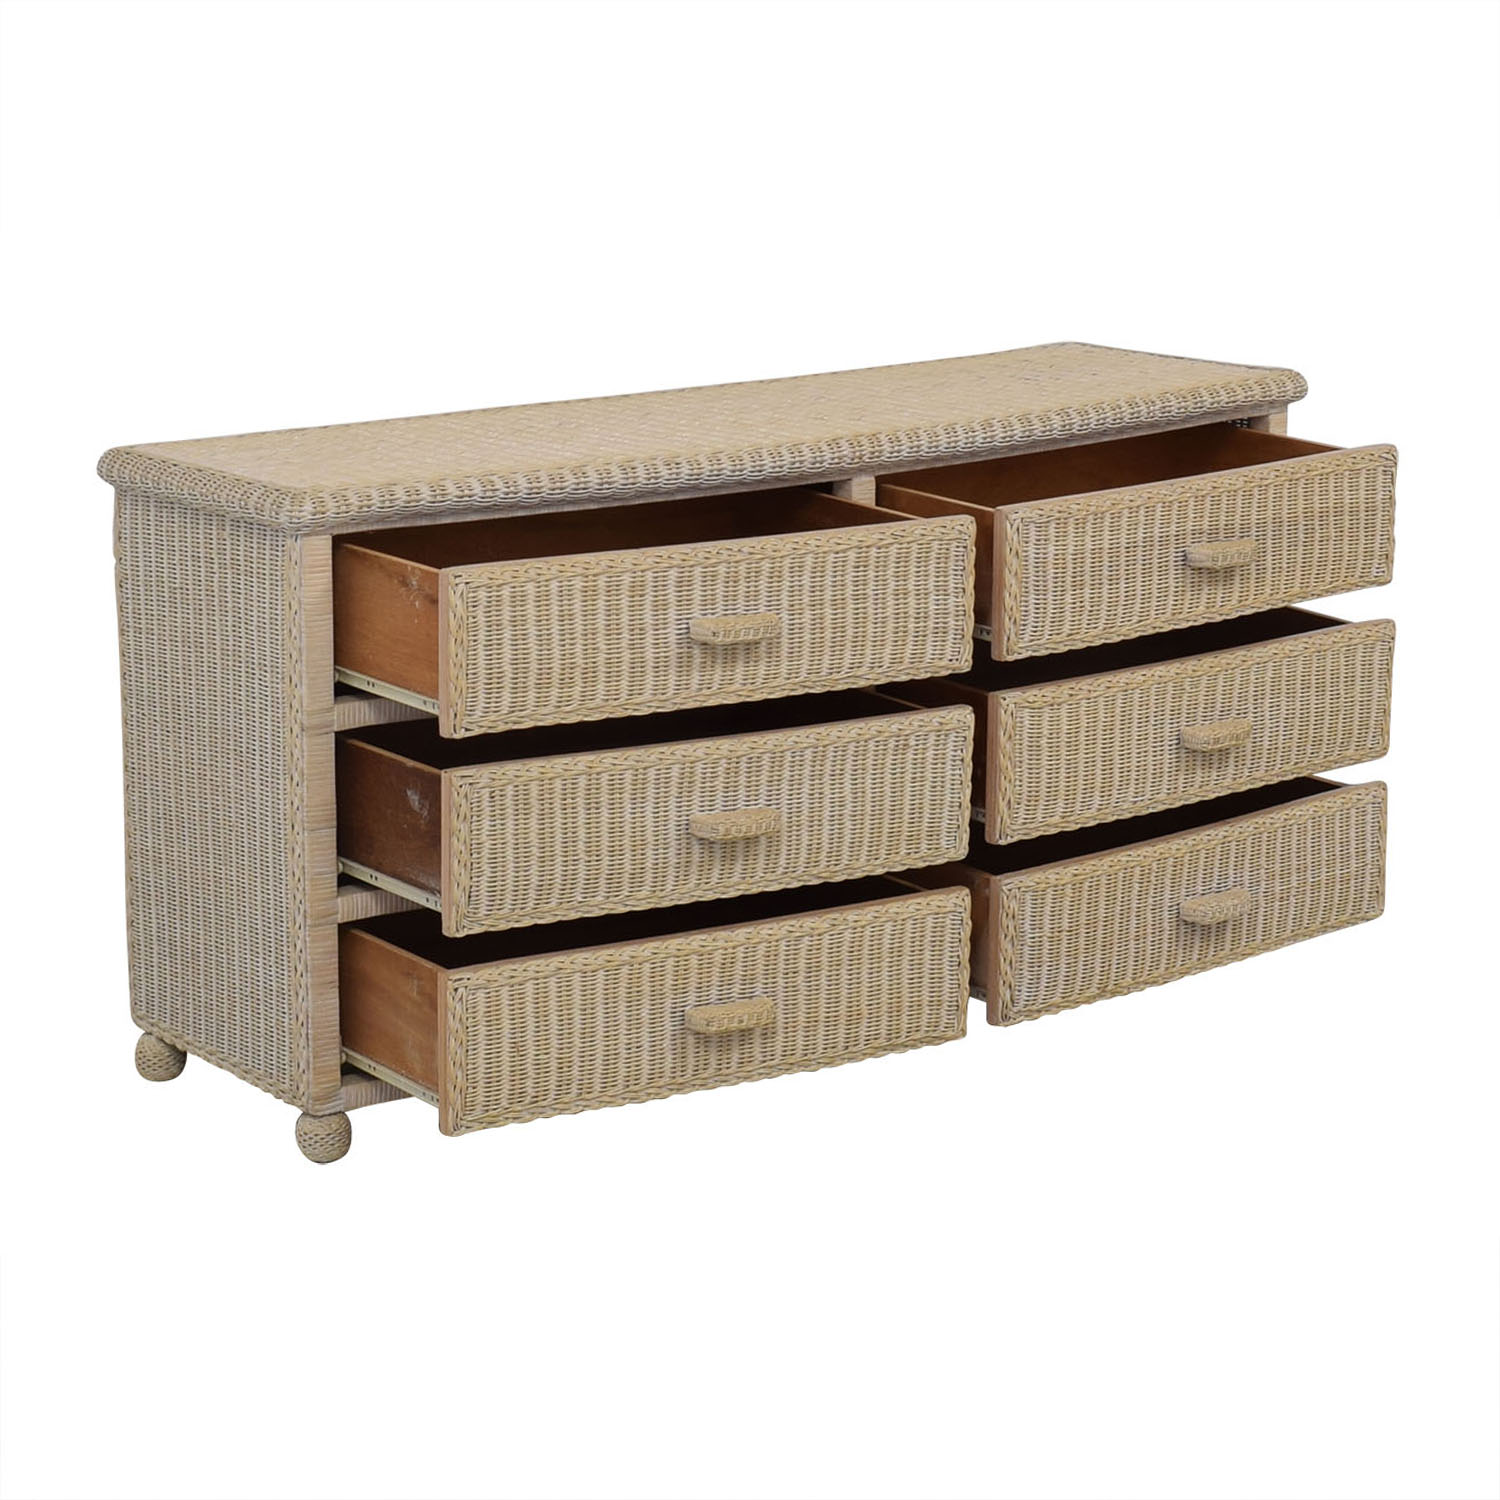 Wicker Dresser Storage